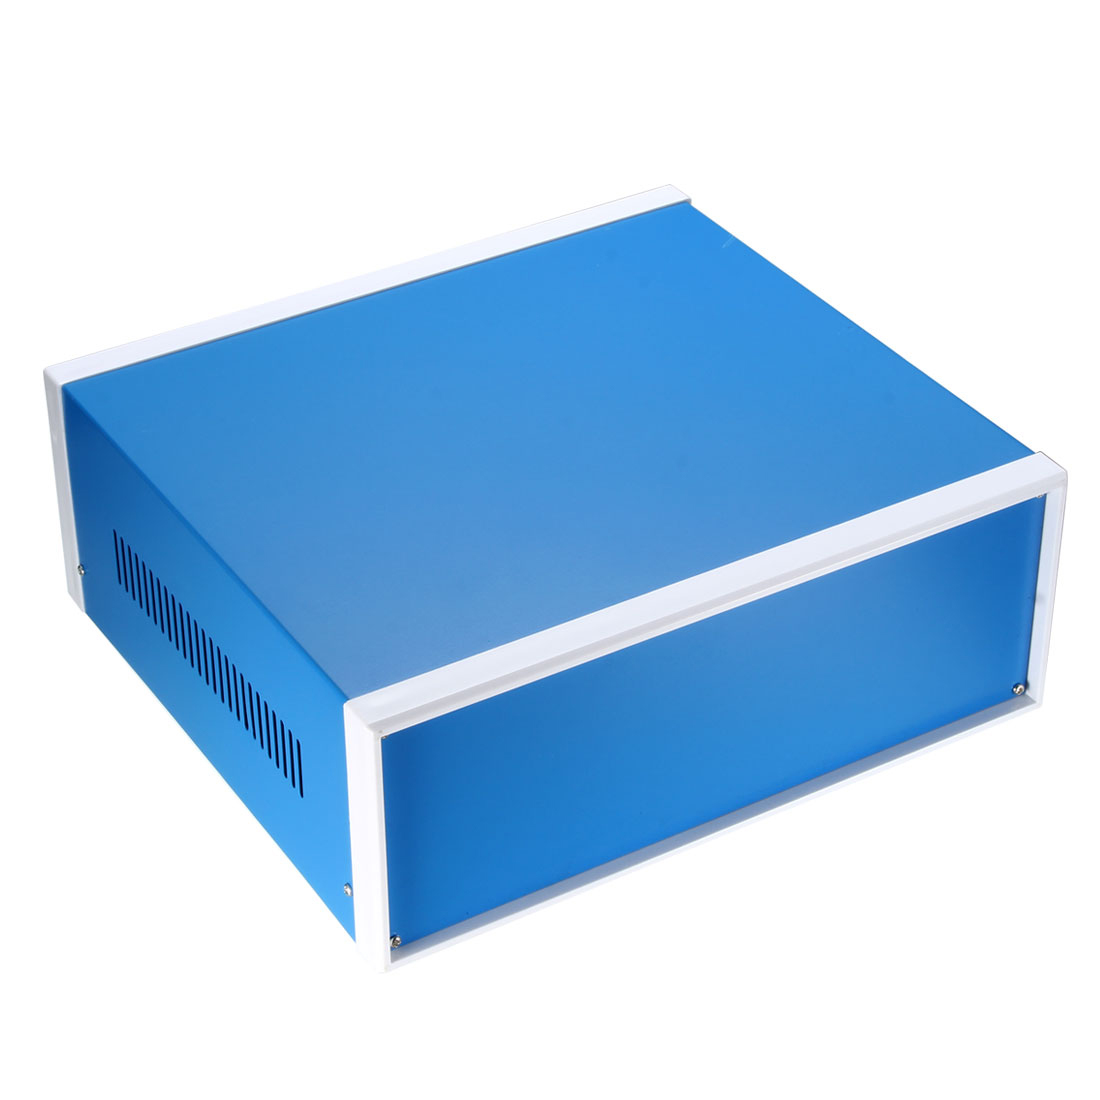 Uxcell Waterproof Cover Electronic Project DIY Junction Box Electronic Iron Enclosure Case 200x165x90mm 210x180x140mm Blue